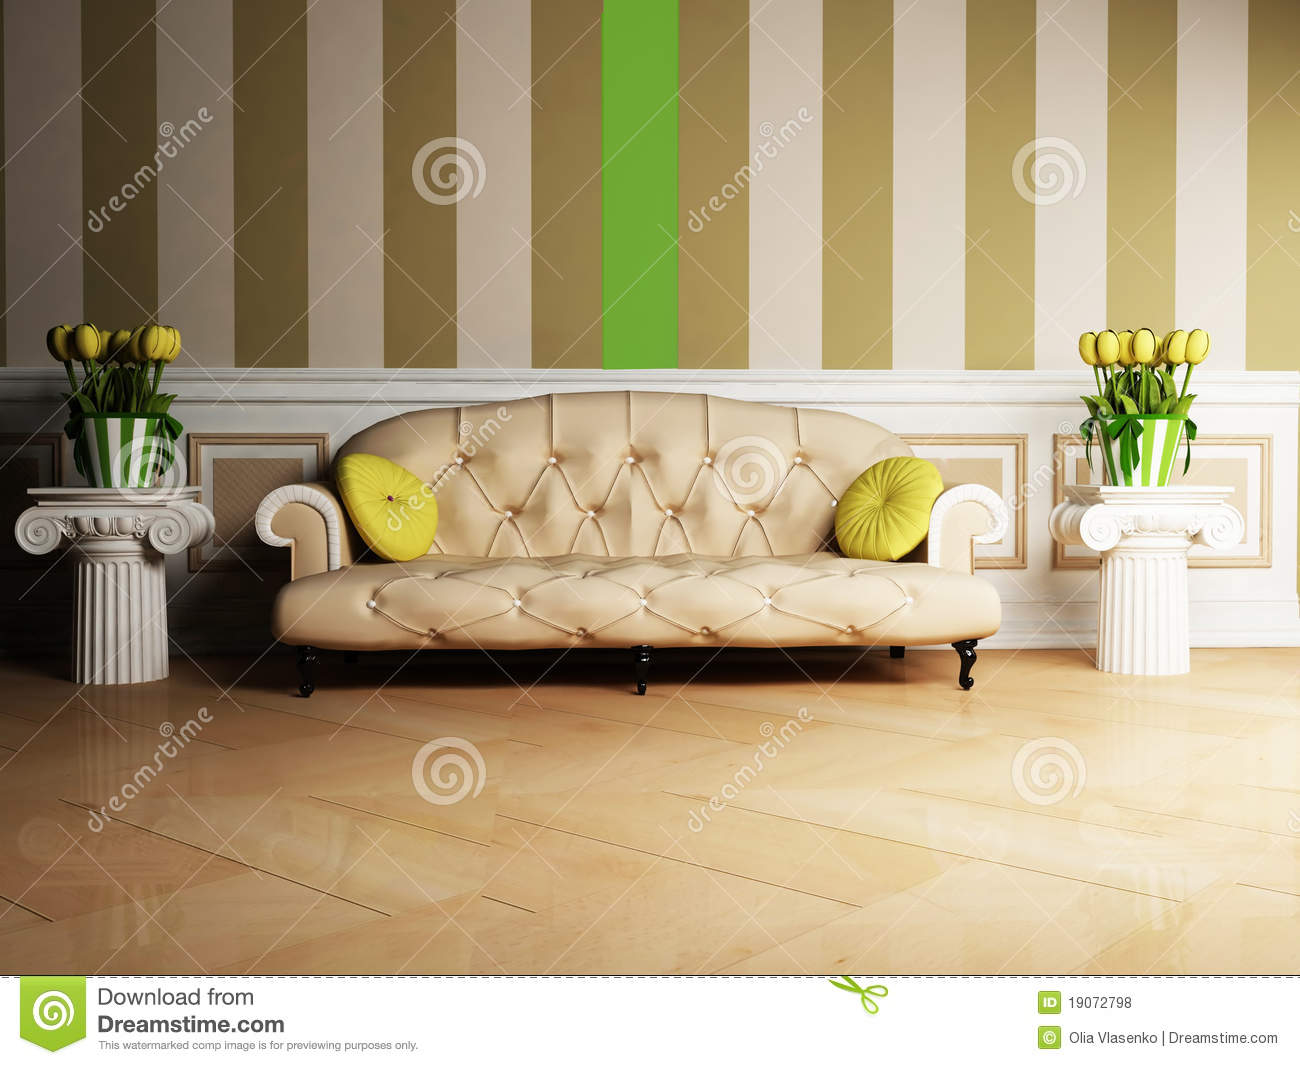 classic sofa designs. Interior Design Scene With A Classic Sofa Designs E